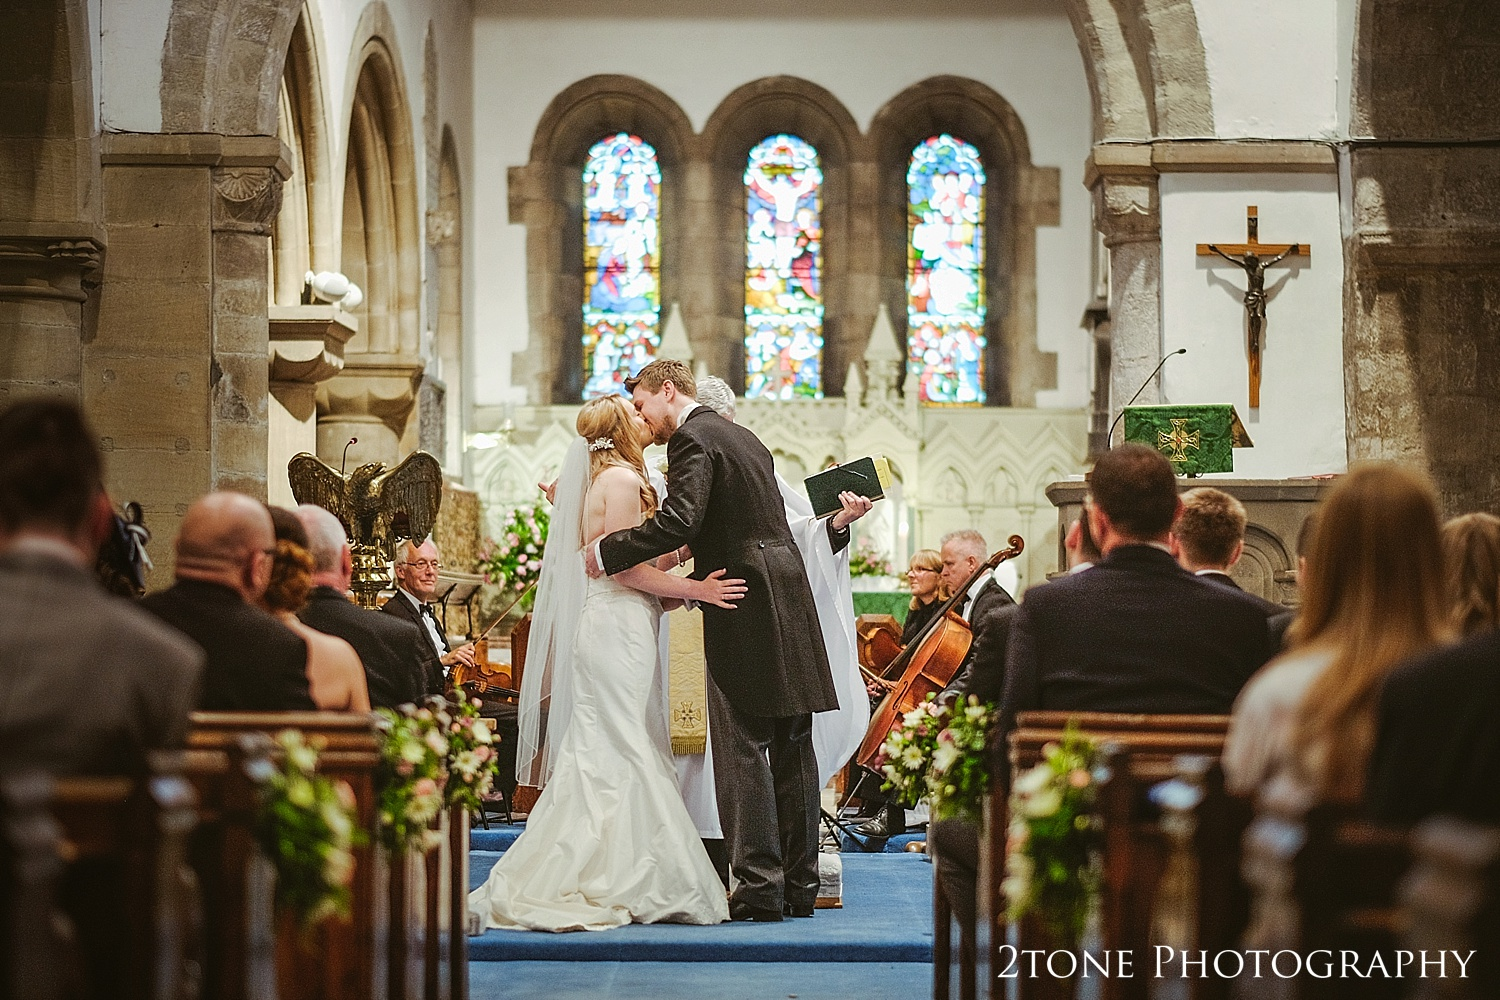 A wedding in Gateshead by www.2tonephotograhy.co.uk